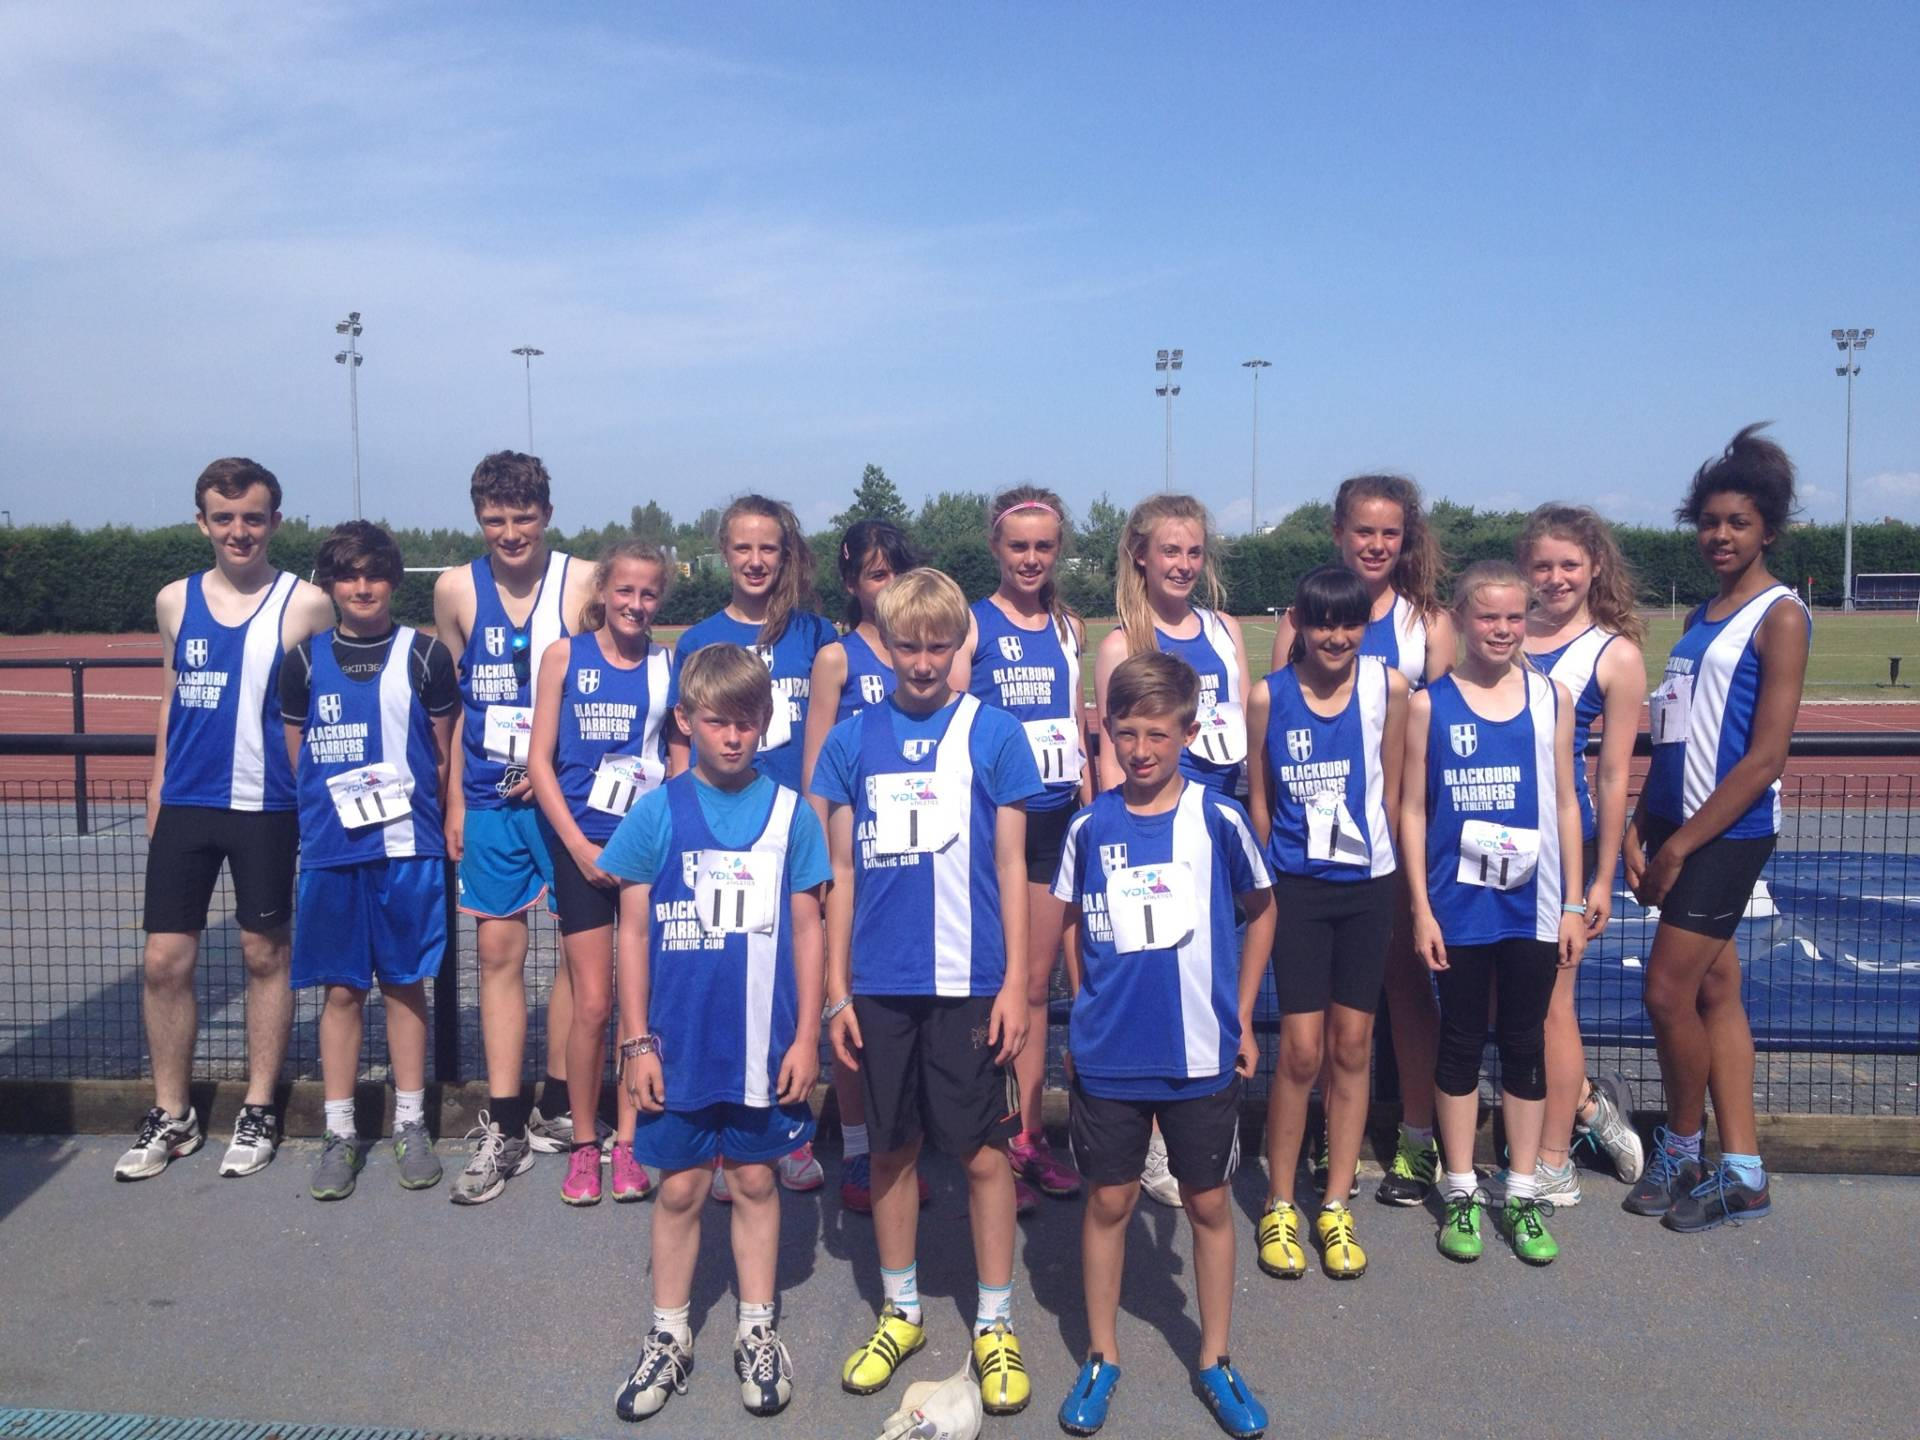 Harriers U13 & U15 Athletes produce lots of PB's at final YDL Fixture